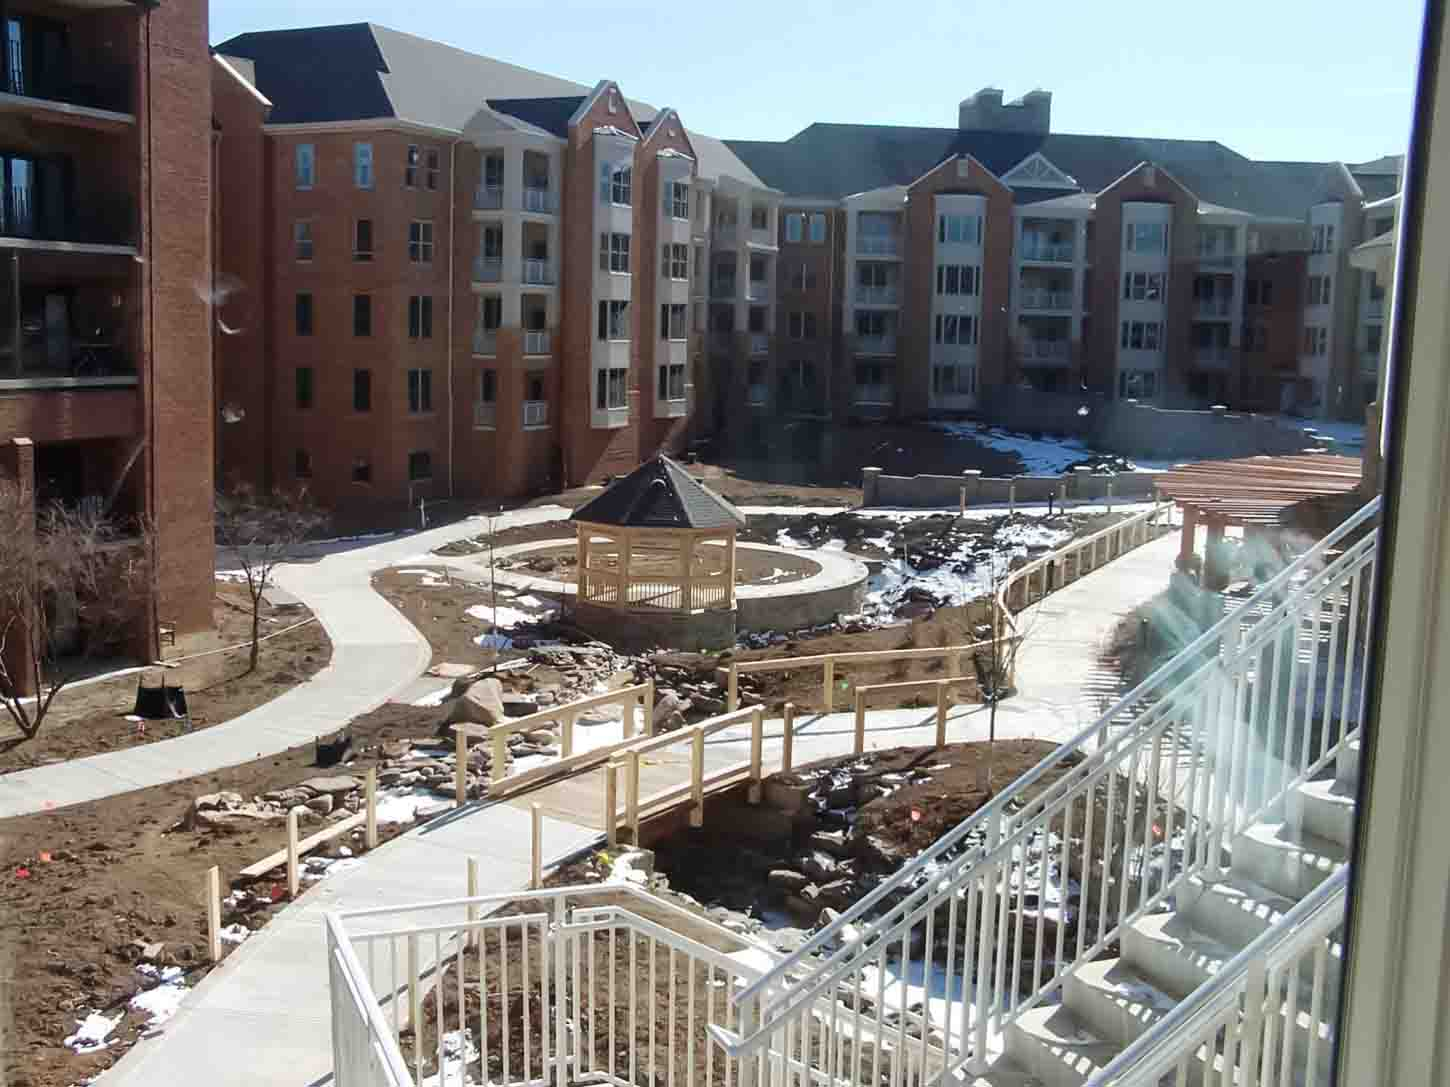 view of courtyard during construction